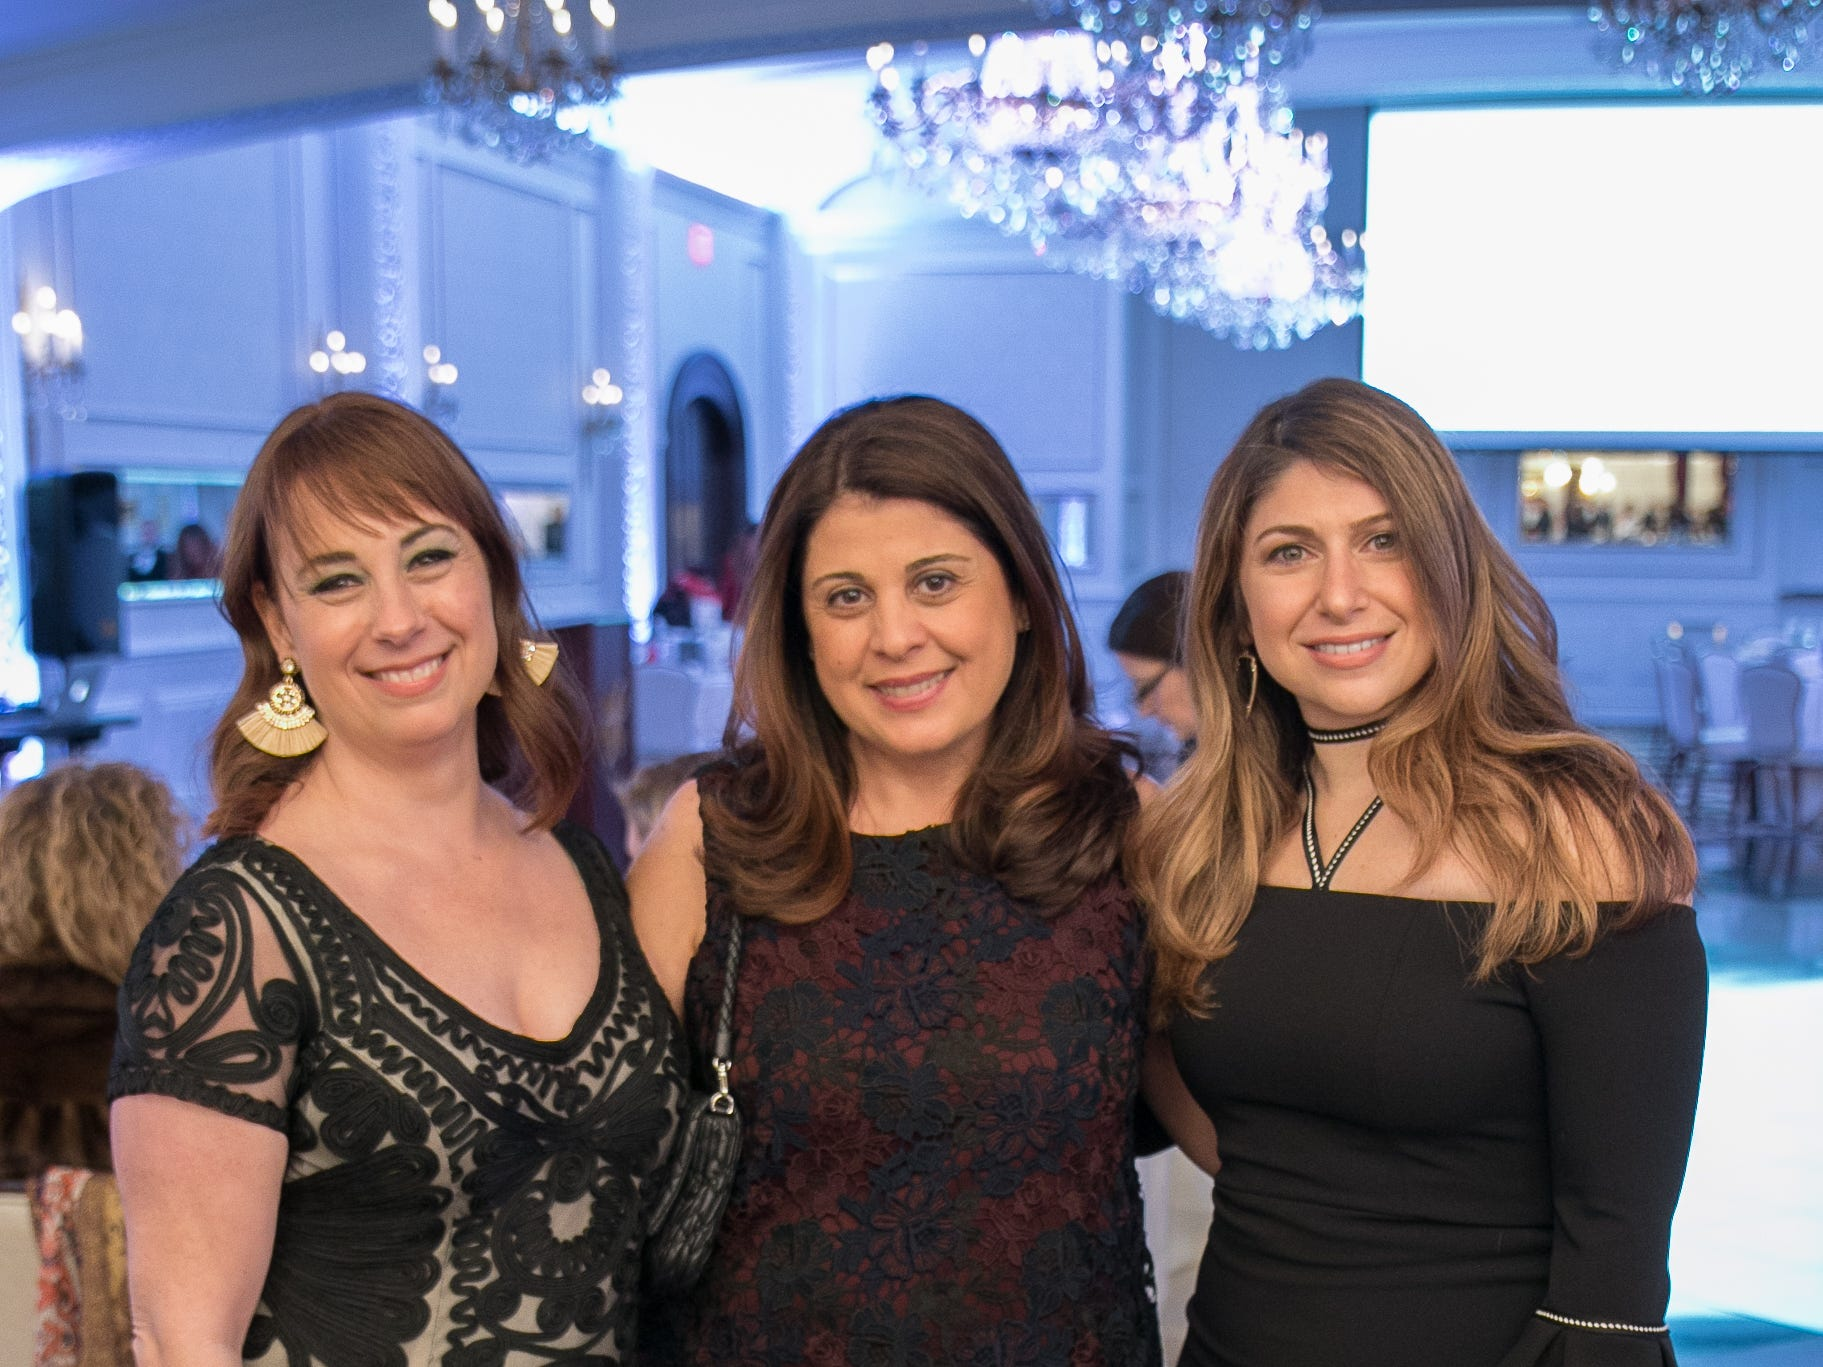 Morgan Freedman, Hilda Havtounian, Sylvia Buzantian. Spring Lake Toys Foundation held it's Night on the Town Gala at Macaluso's in Hawthorne. Money raised benefits children with illnesses to assist in all their financial needs. 03/01/2019